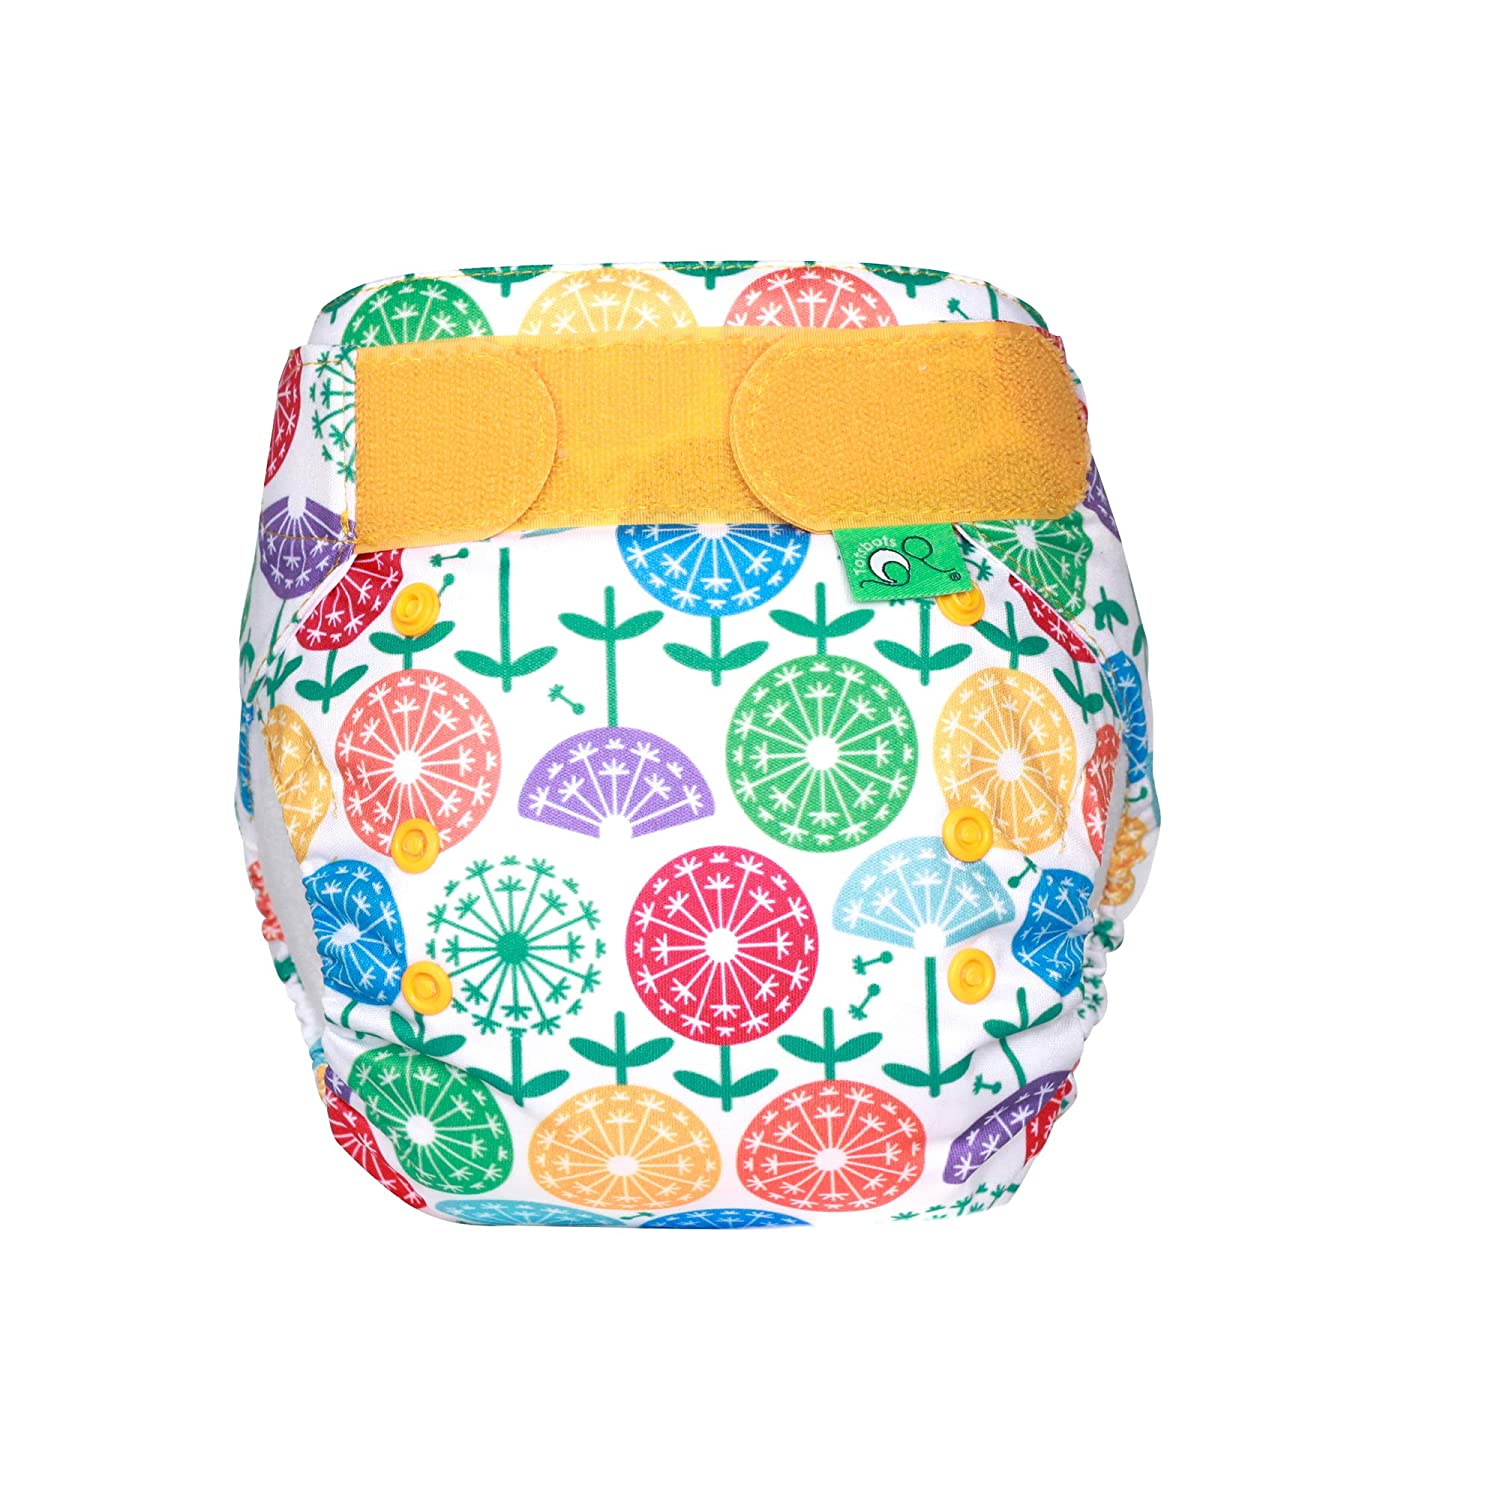 TotsBots All-in-one Reusable Nappy EasyFit Star Dandy